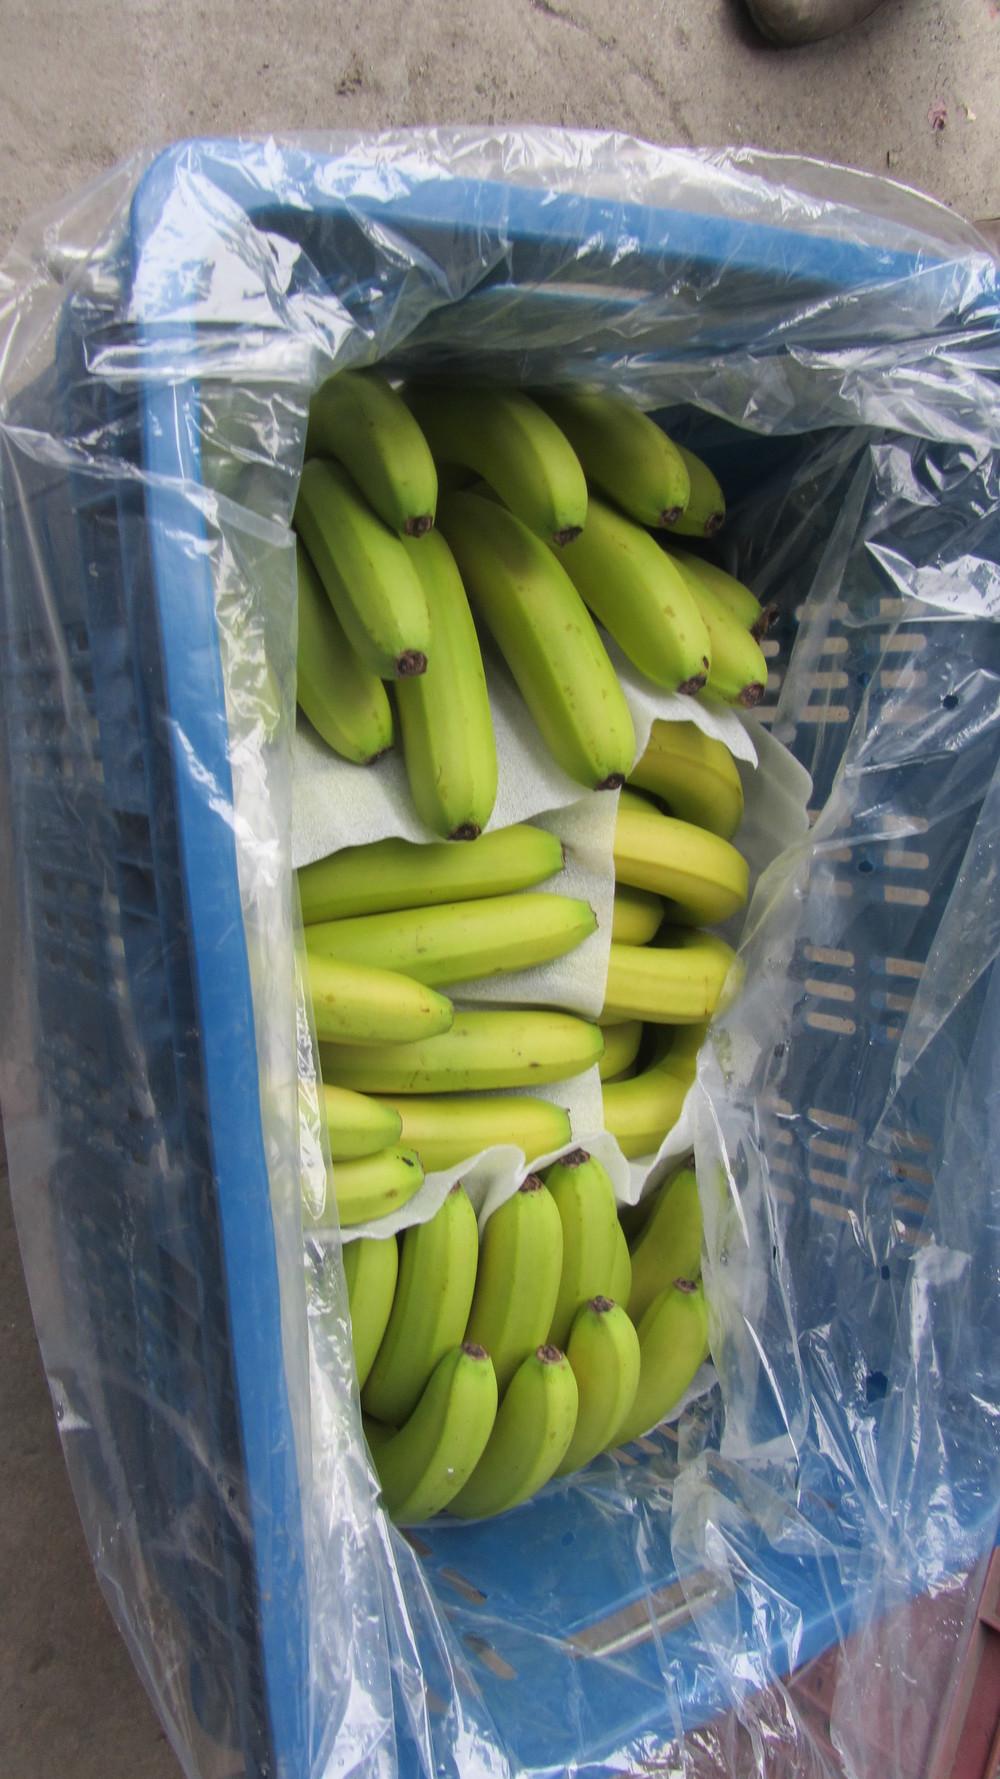 The bananas are stored in baskets,